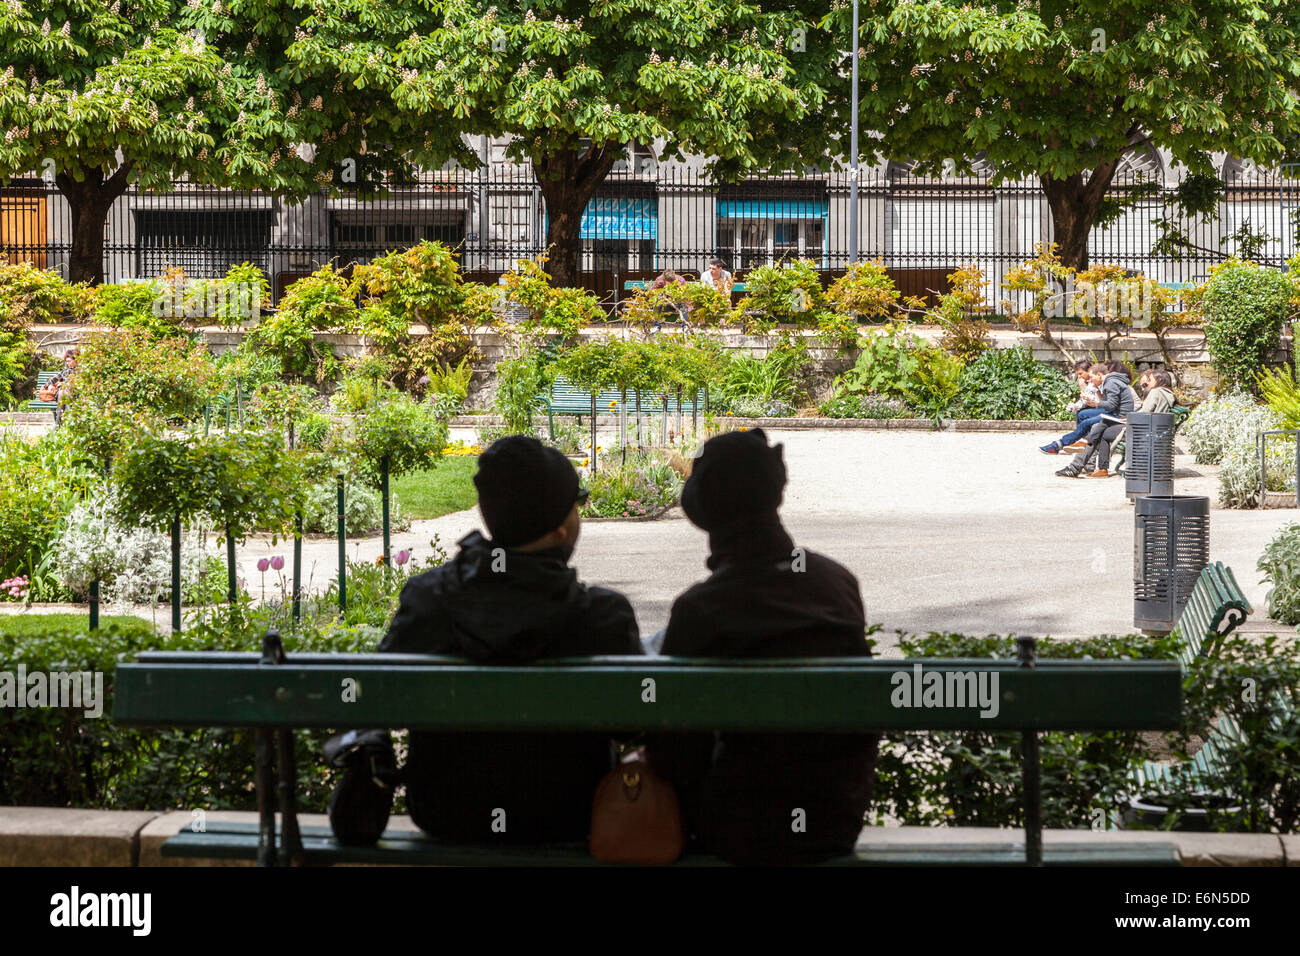 People sitting out in the public parks, Grenoble, Rhone-Alpes, France - Stock Image